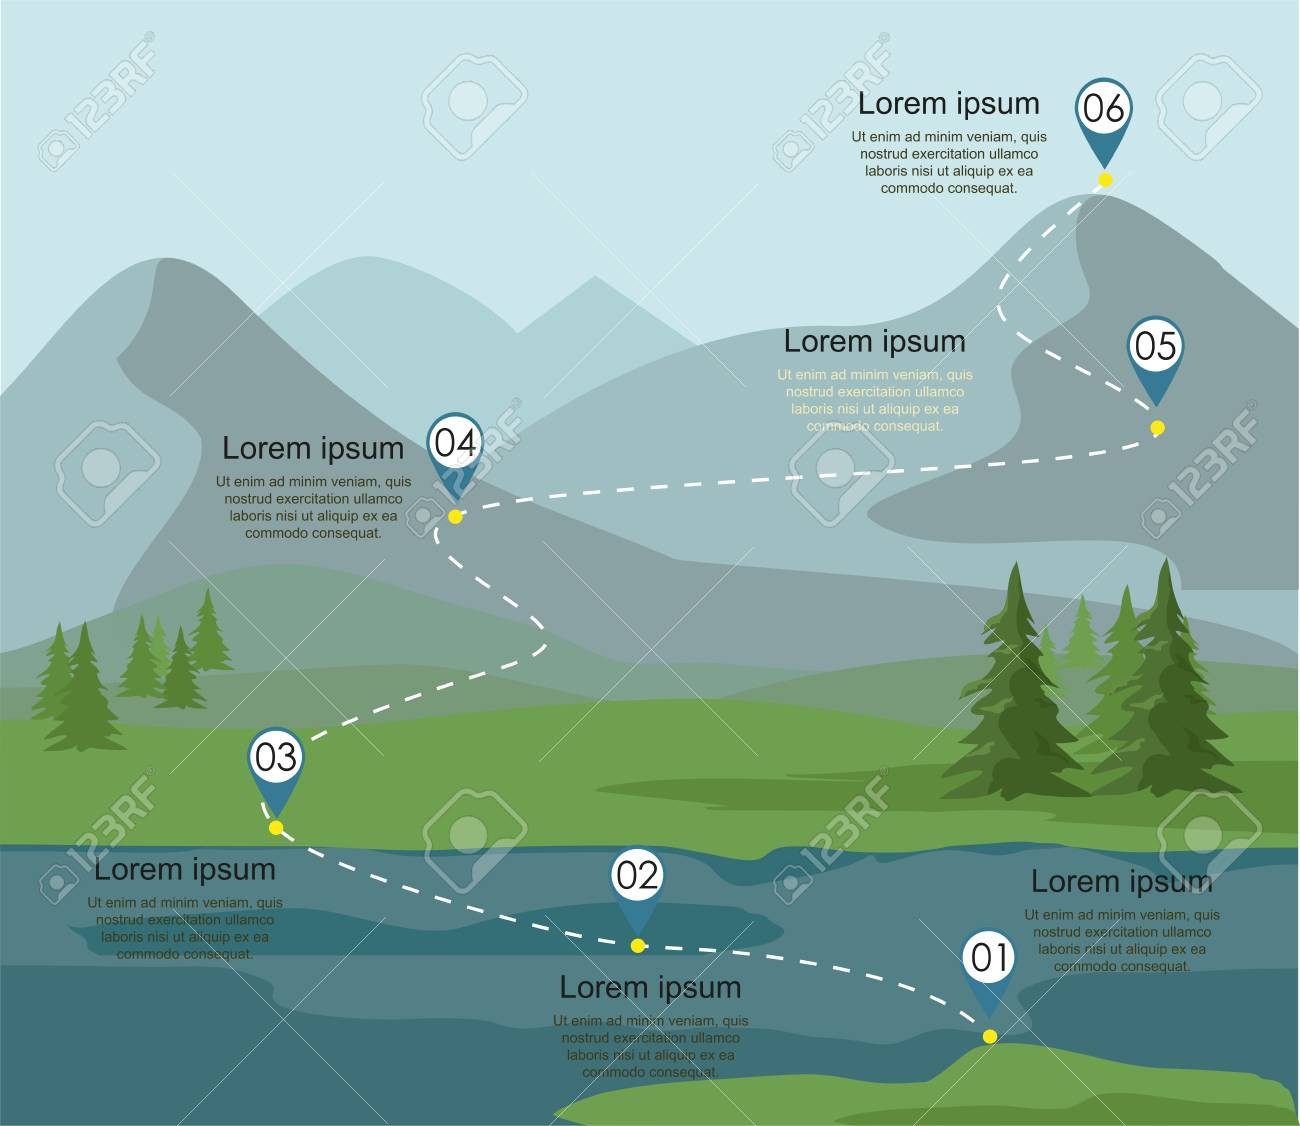 Tourism route infographic. Layers of mountain landscape with fir forest and river. Vector illustration. - 103042733